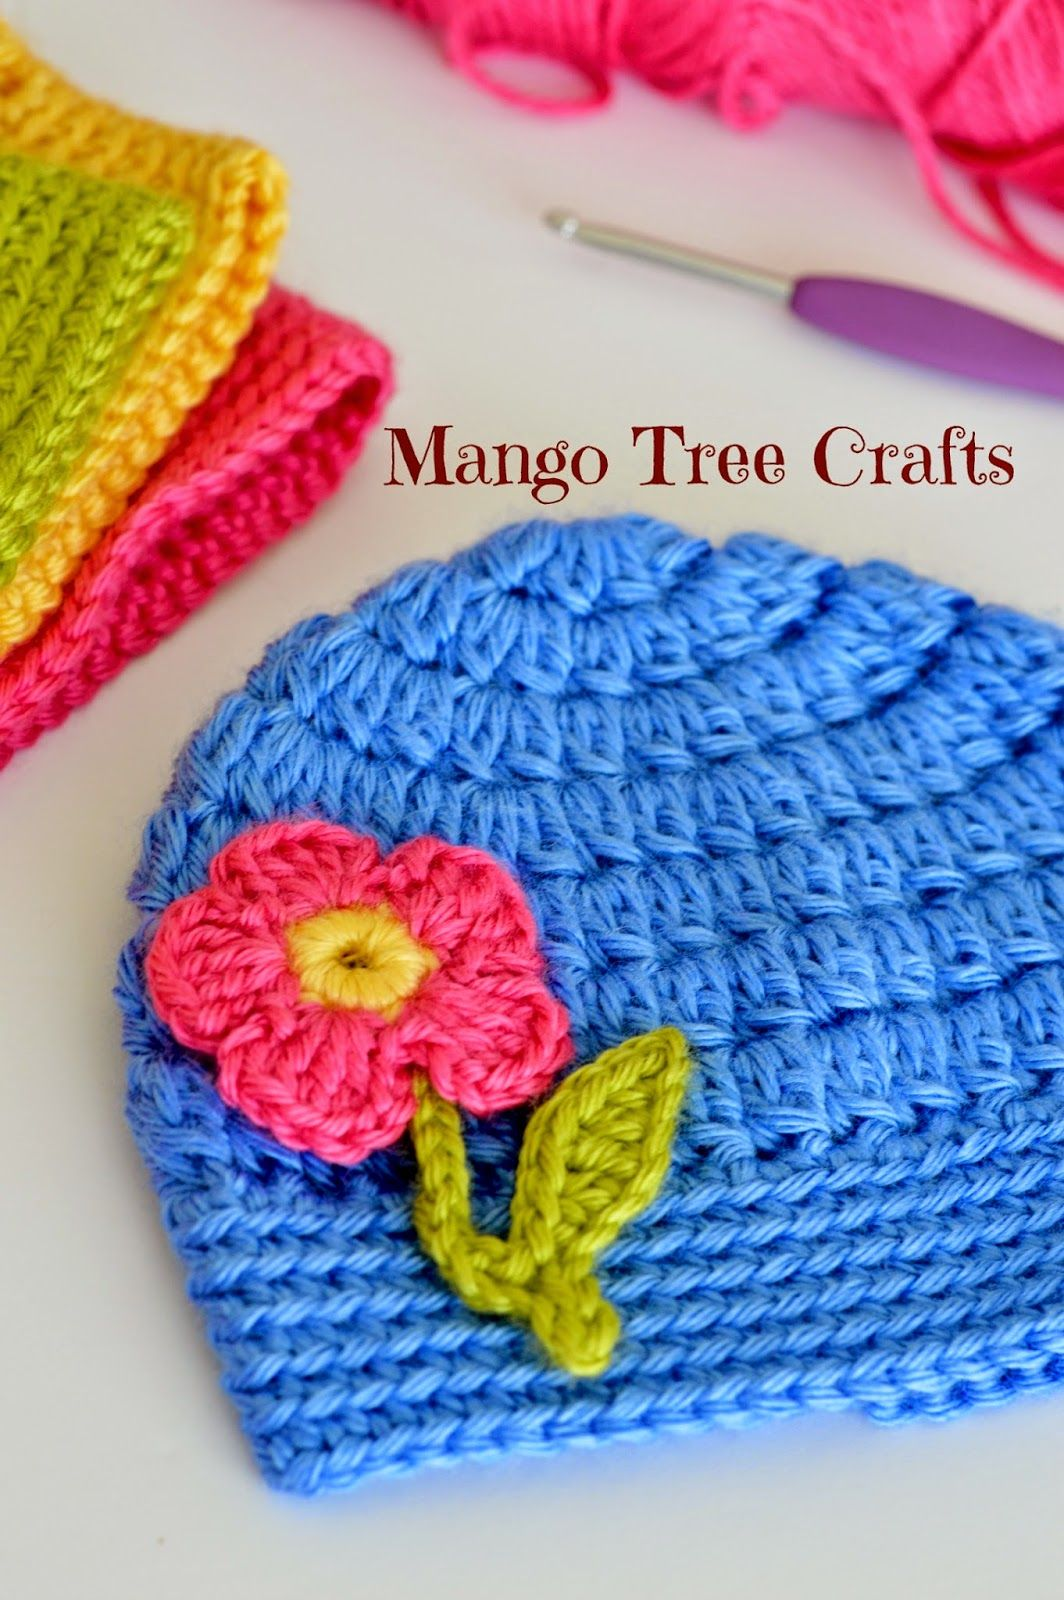 Mango tree crafts free basic beanie crochet pattern all sizes mango tree crafts free basic beanie crochet pattern all sizes bankloansurffo Image collections